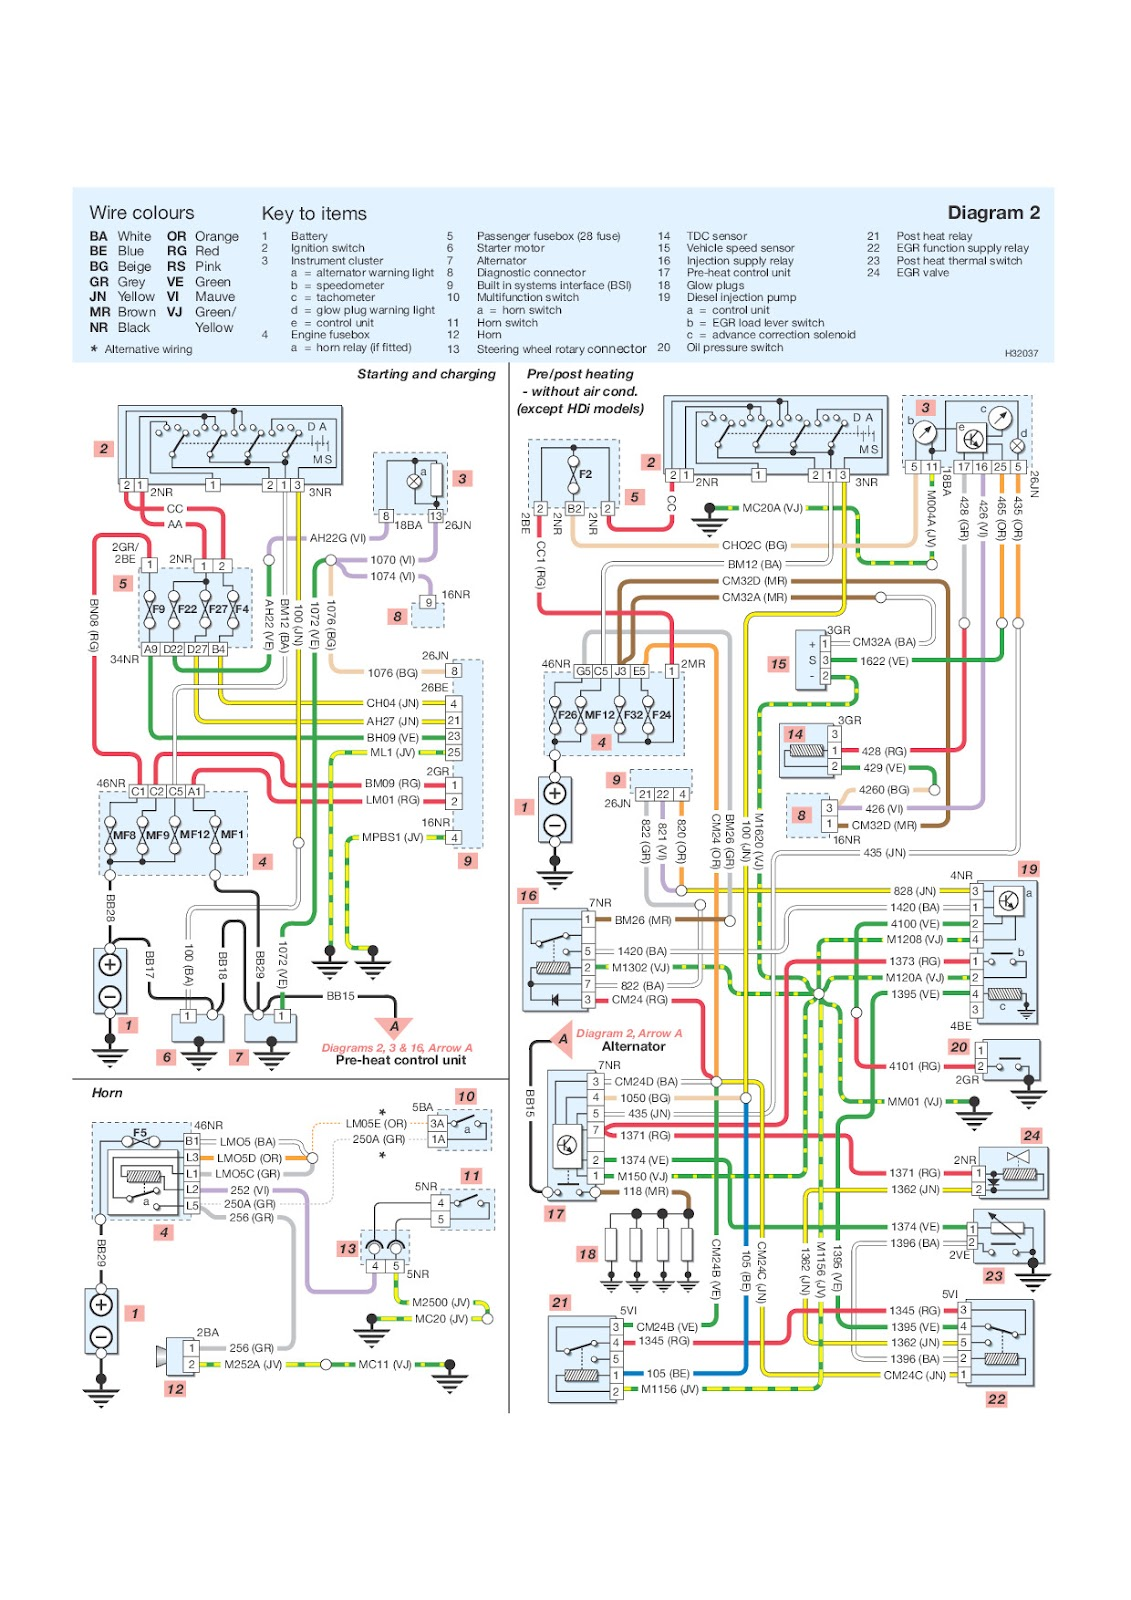 Admirable Peugeot Wiring Diagrams Wiring Diagram Wiring Cloud Ostrrenstrafr09Org